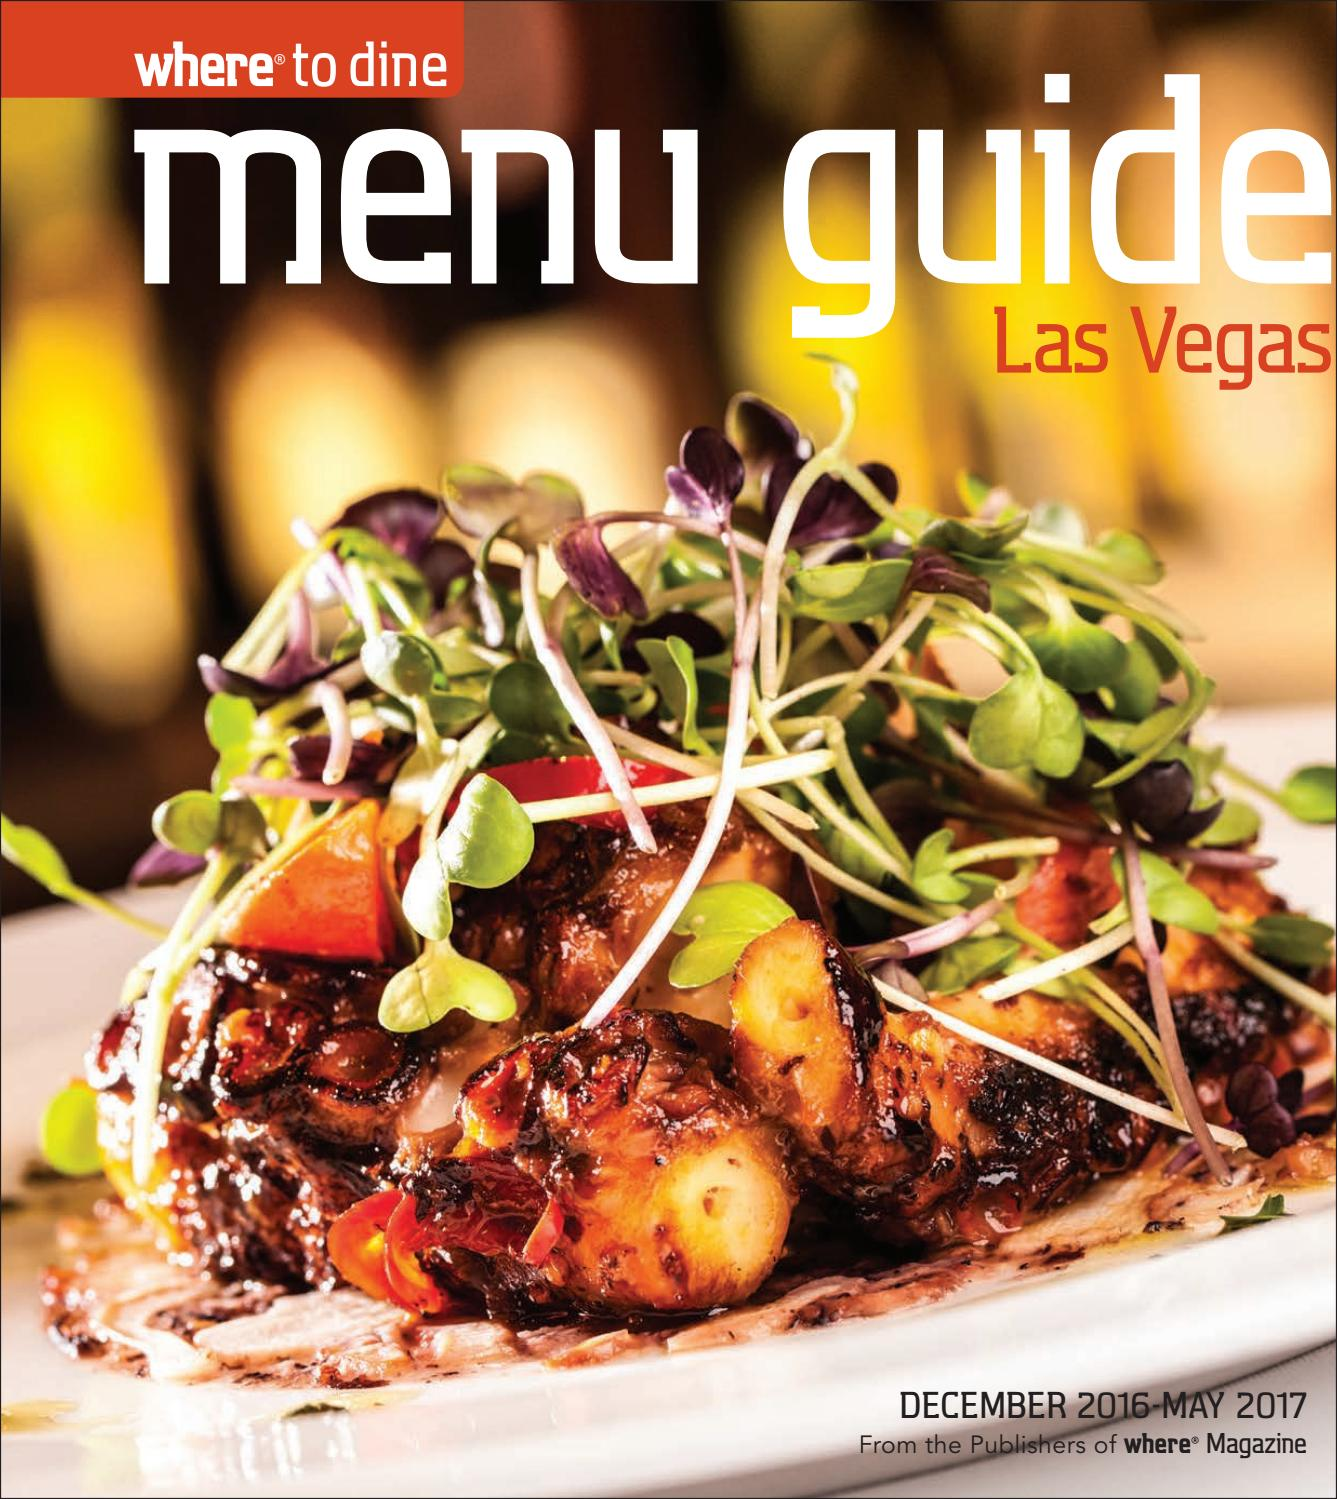 las vegas menu guide december 2016 may 2017 by morris media